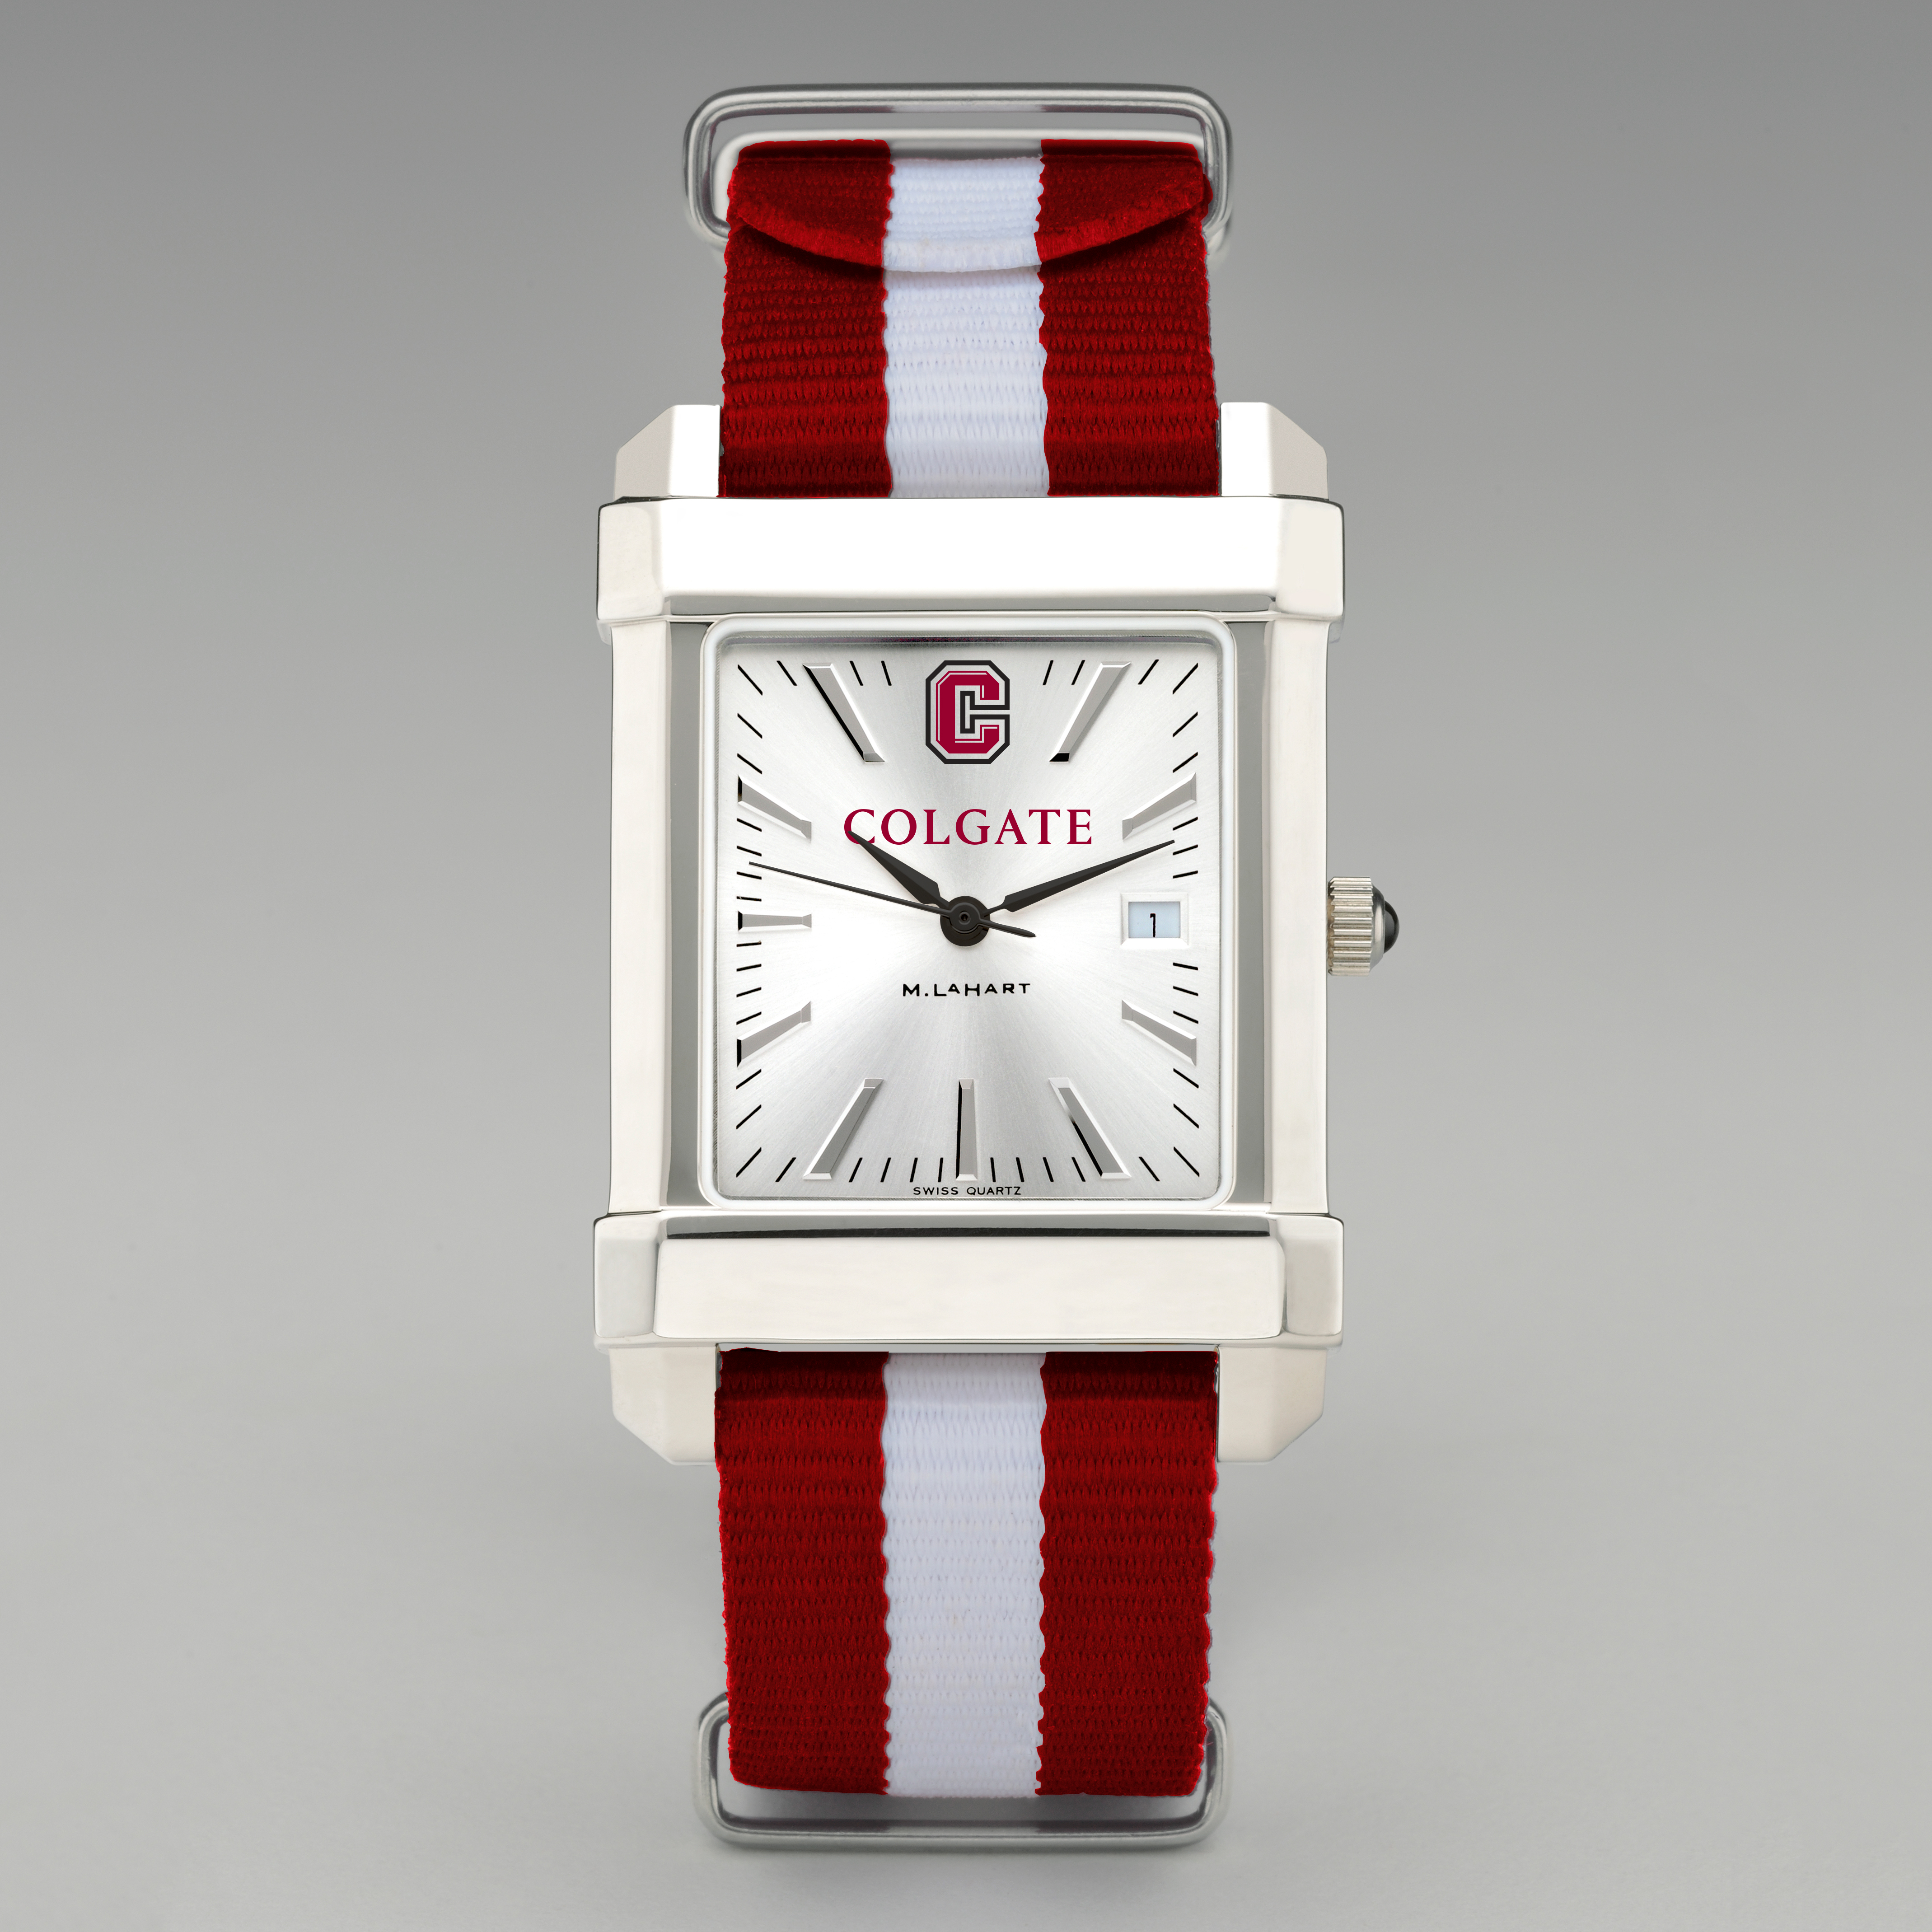 Colgate University Collegiate Watch with NATO Strap for Men - Image 2